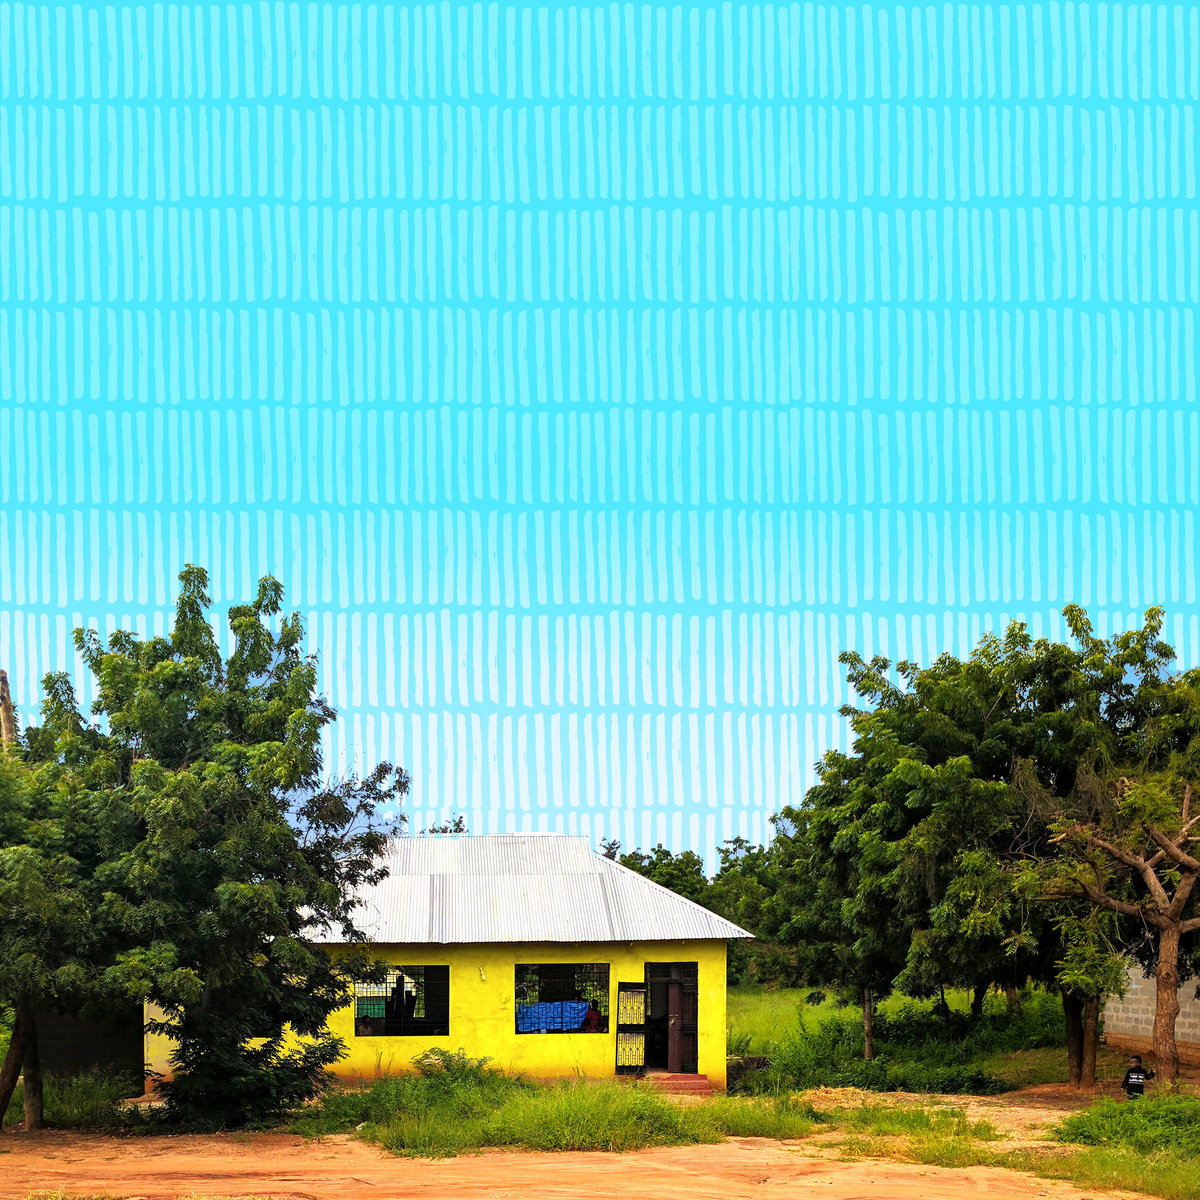 Copy of No Text Swahili Coast Coop Banner Photo Square